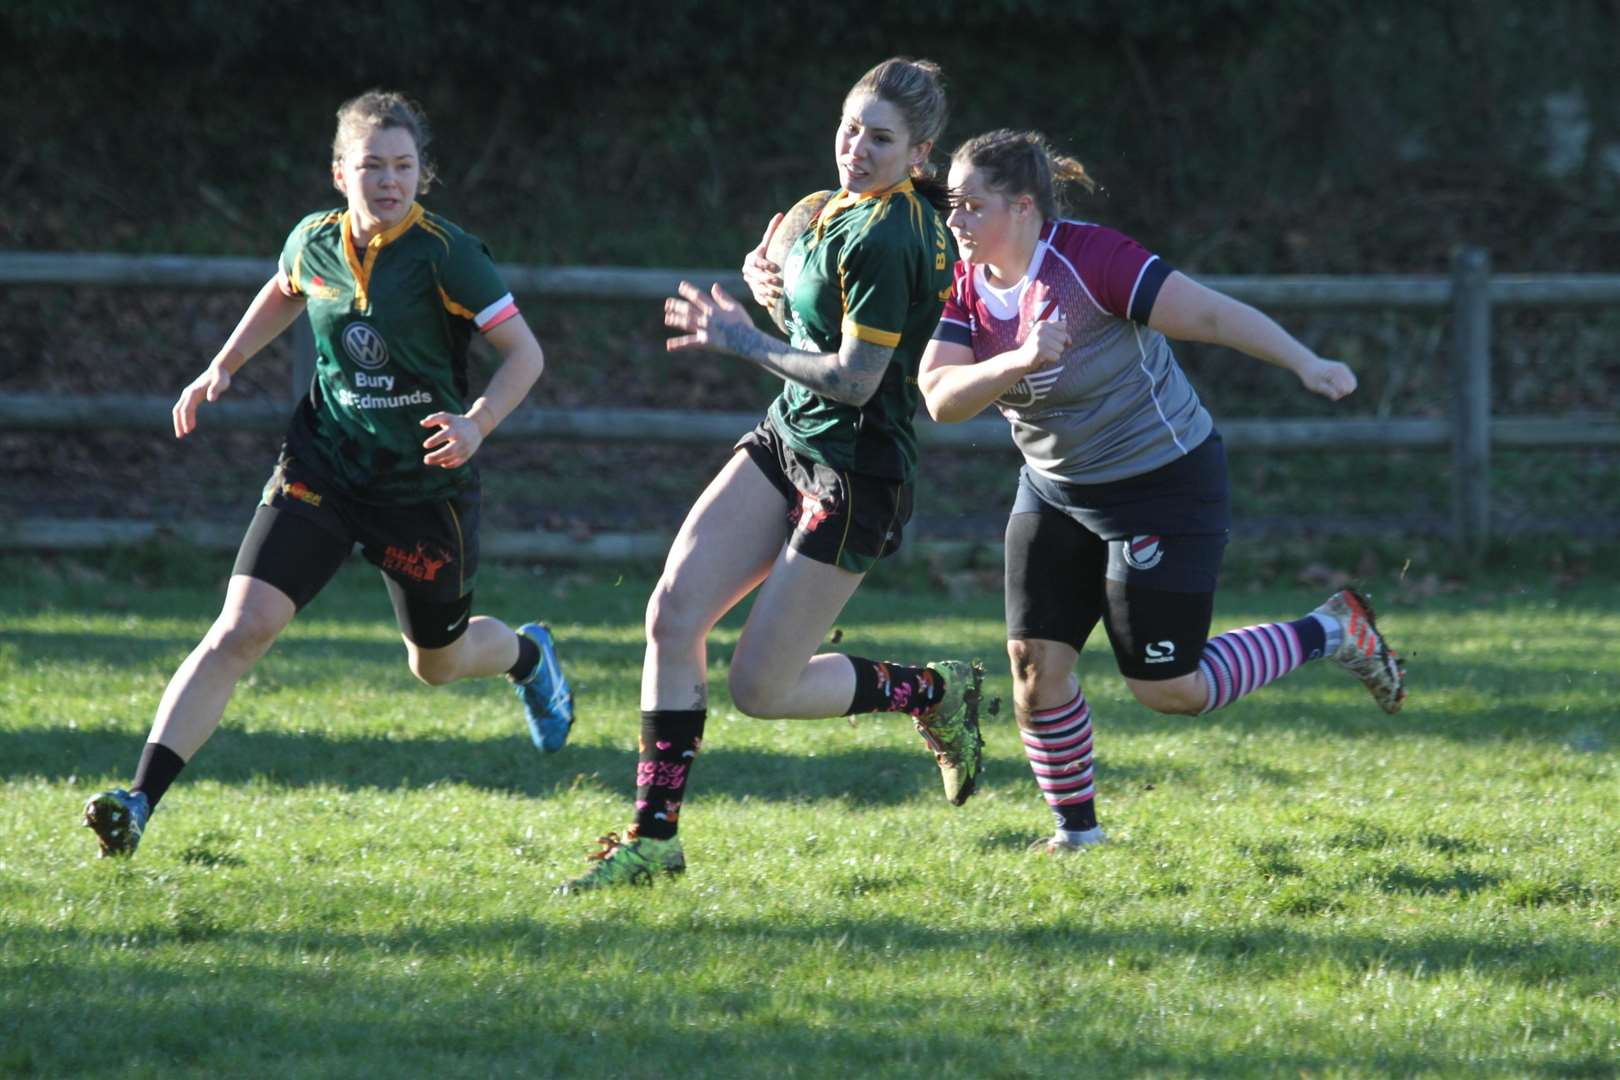 Stephanie Durrant on her way to scoring a try for Bury	Picture: Shawn Pearce